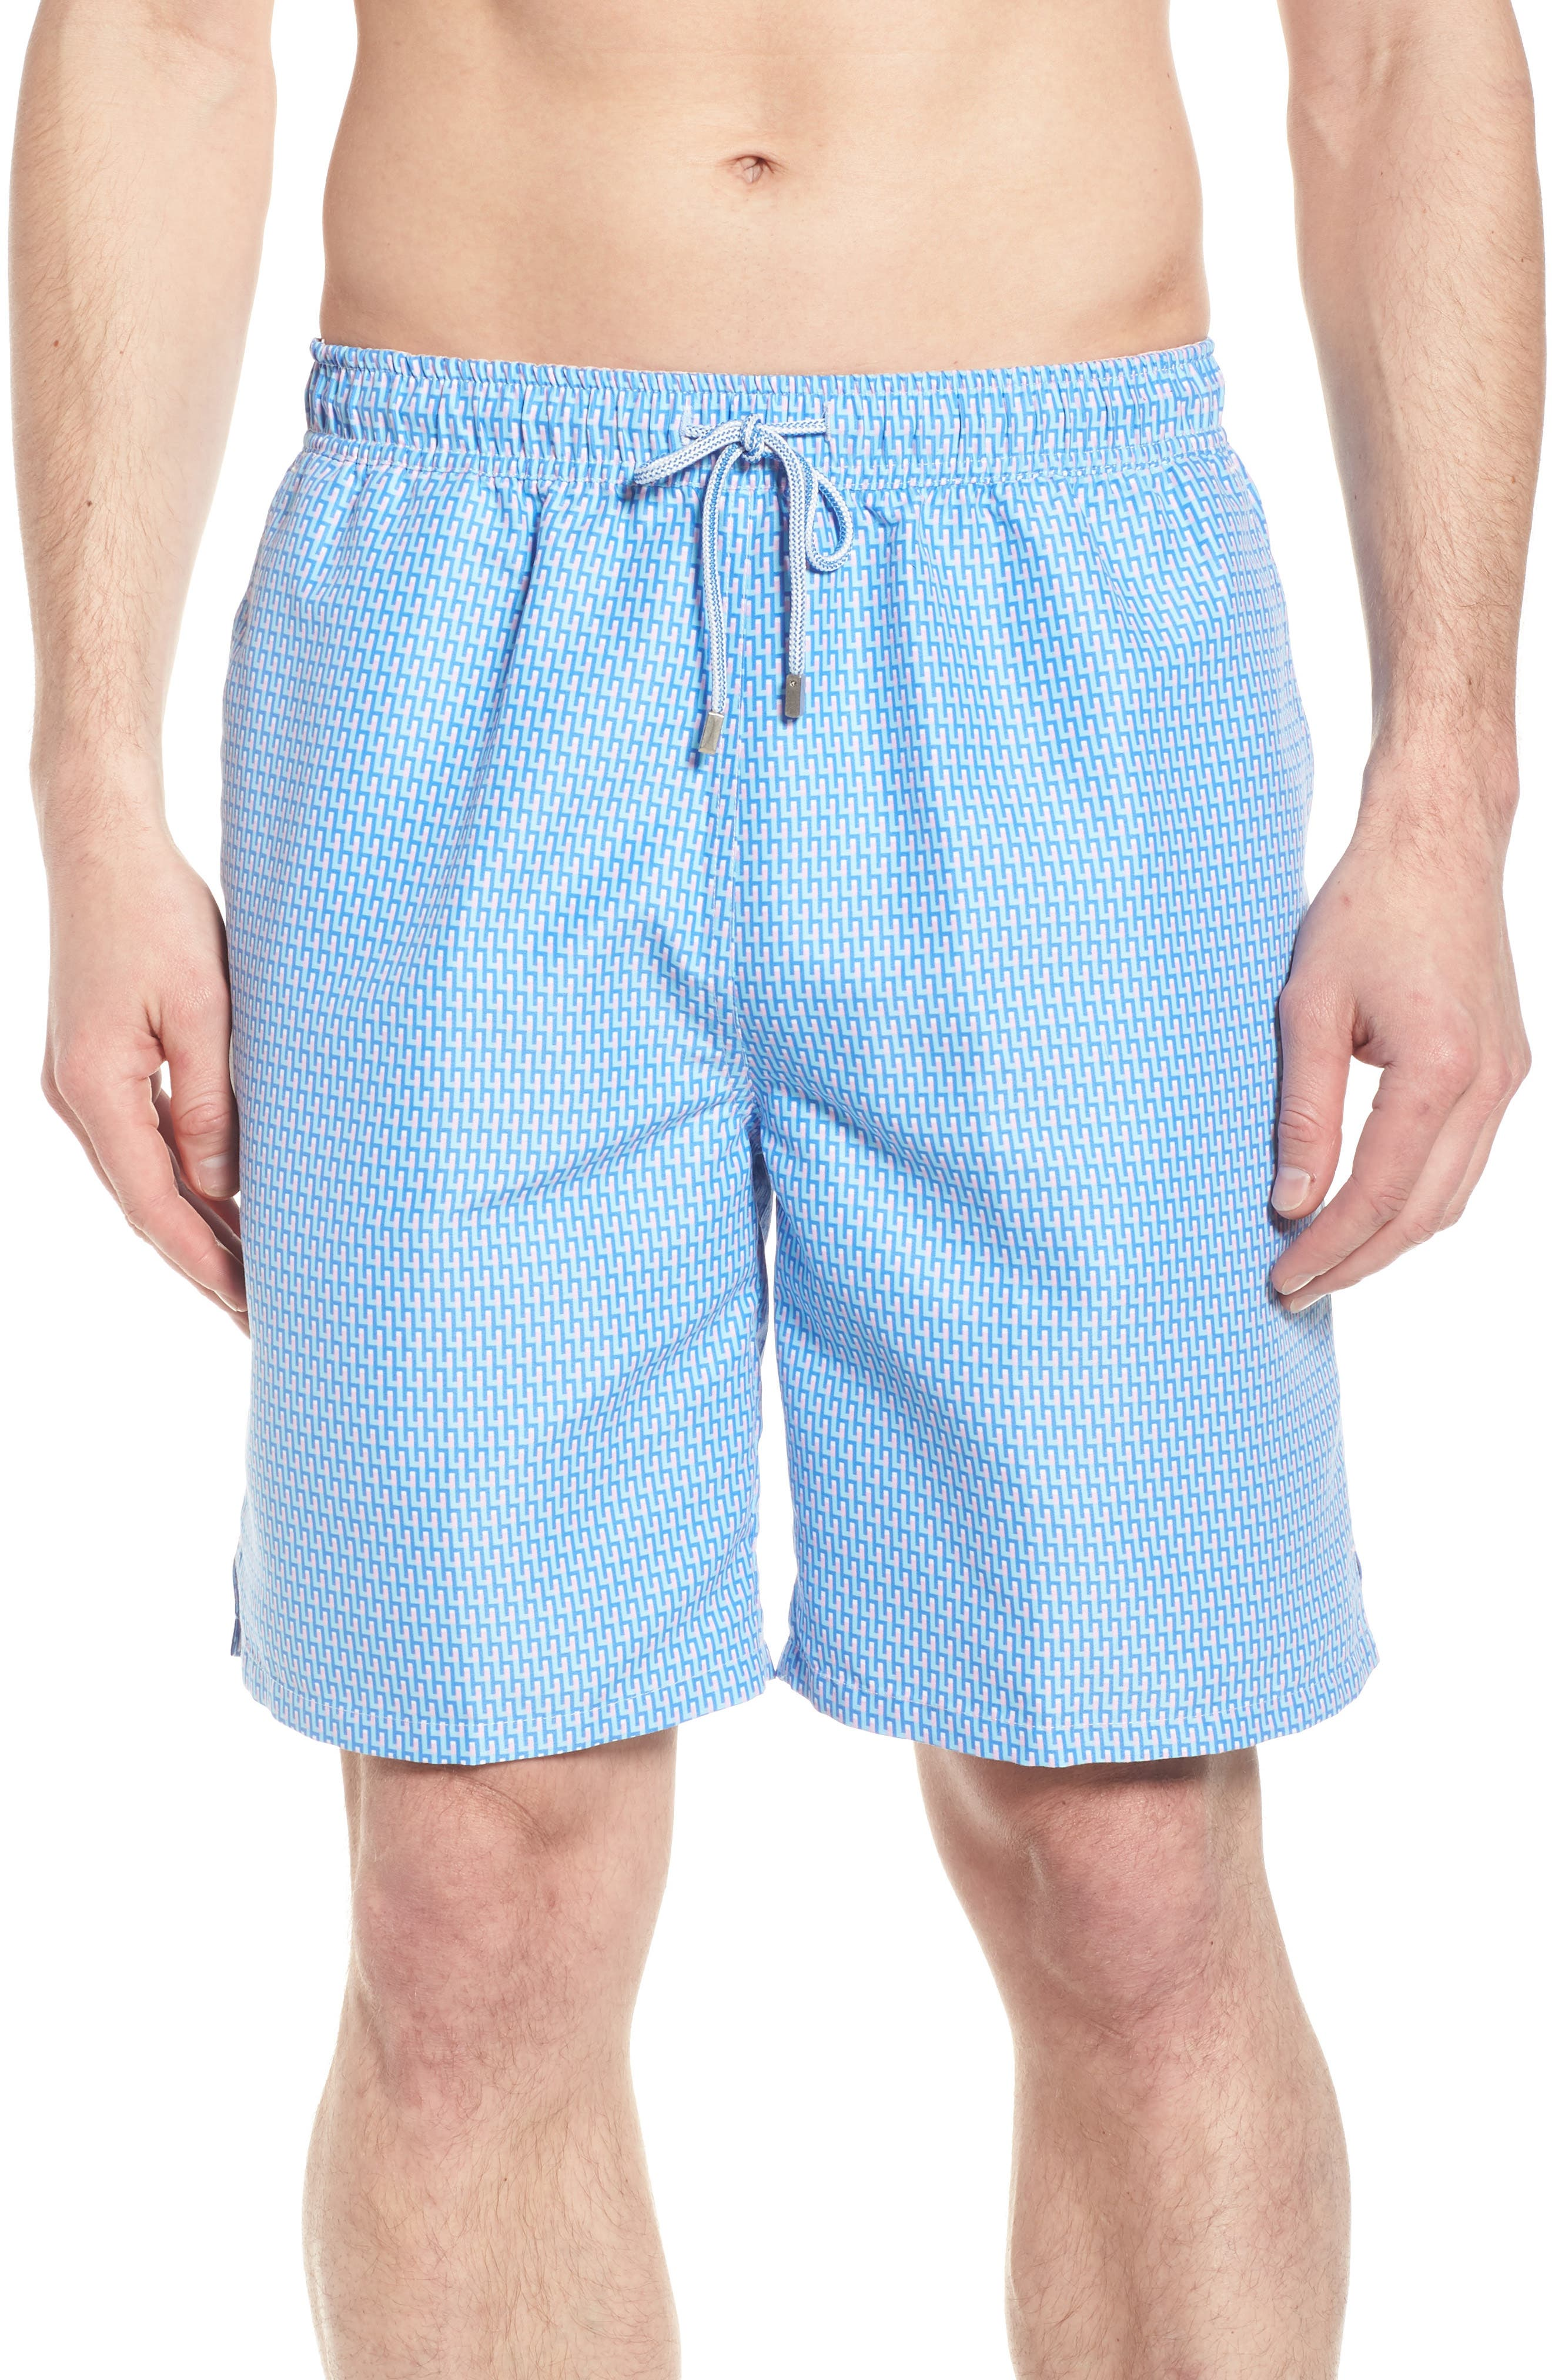 Mazed & Confused Swim Trunks,                         Main,                         color, 464